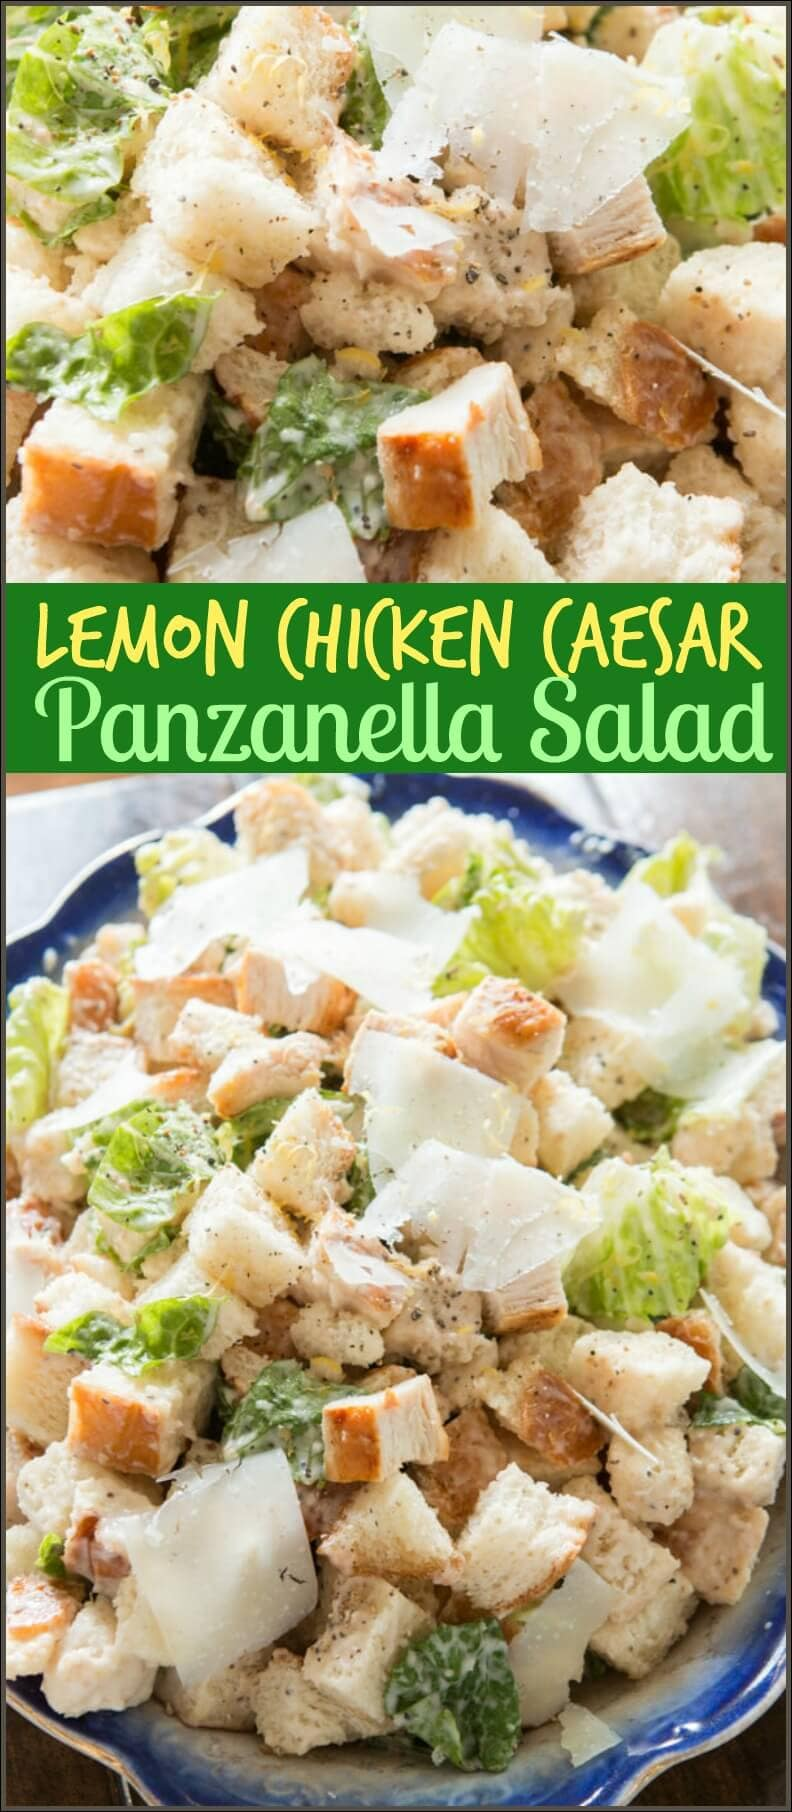 There's nothing better than carbs and this lemon chicken caesar panzanella salad is the best salad I've had all summer. Plus there's a hint of lemon!